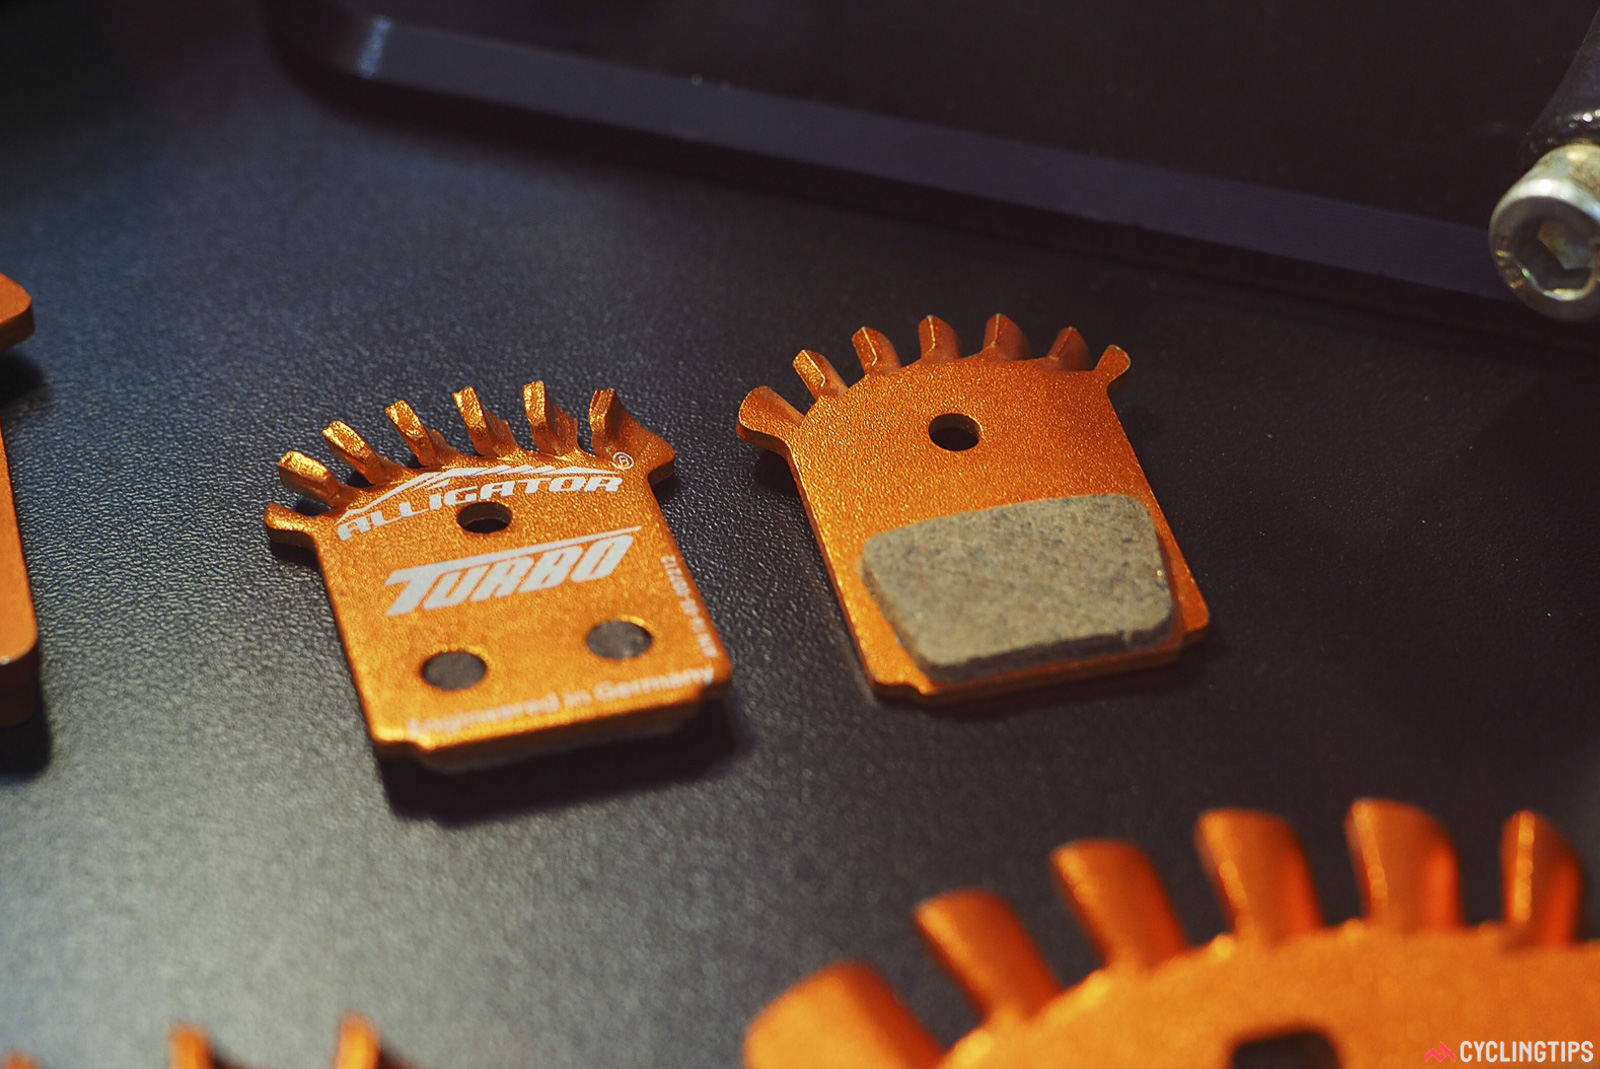 Also new from Alligator are these finned disc brake pads, with the idea being that their increased surface area should help dissipate more heat into the surrounding air. Alligator has figured out a very inexpensive way to manufacture such a thing, too. Photo: James Huang.